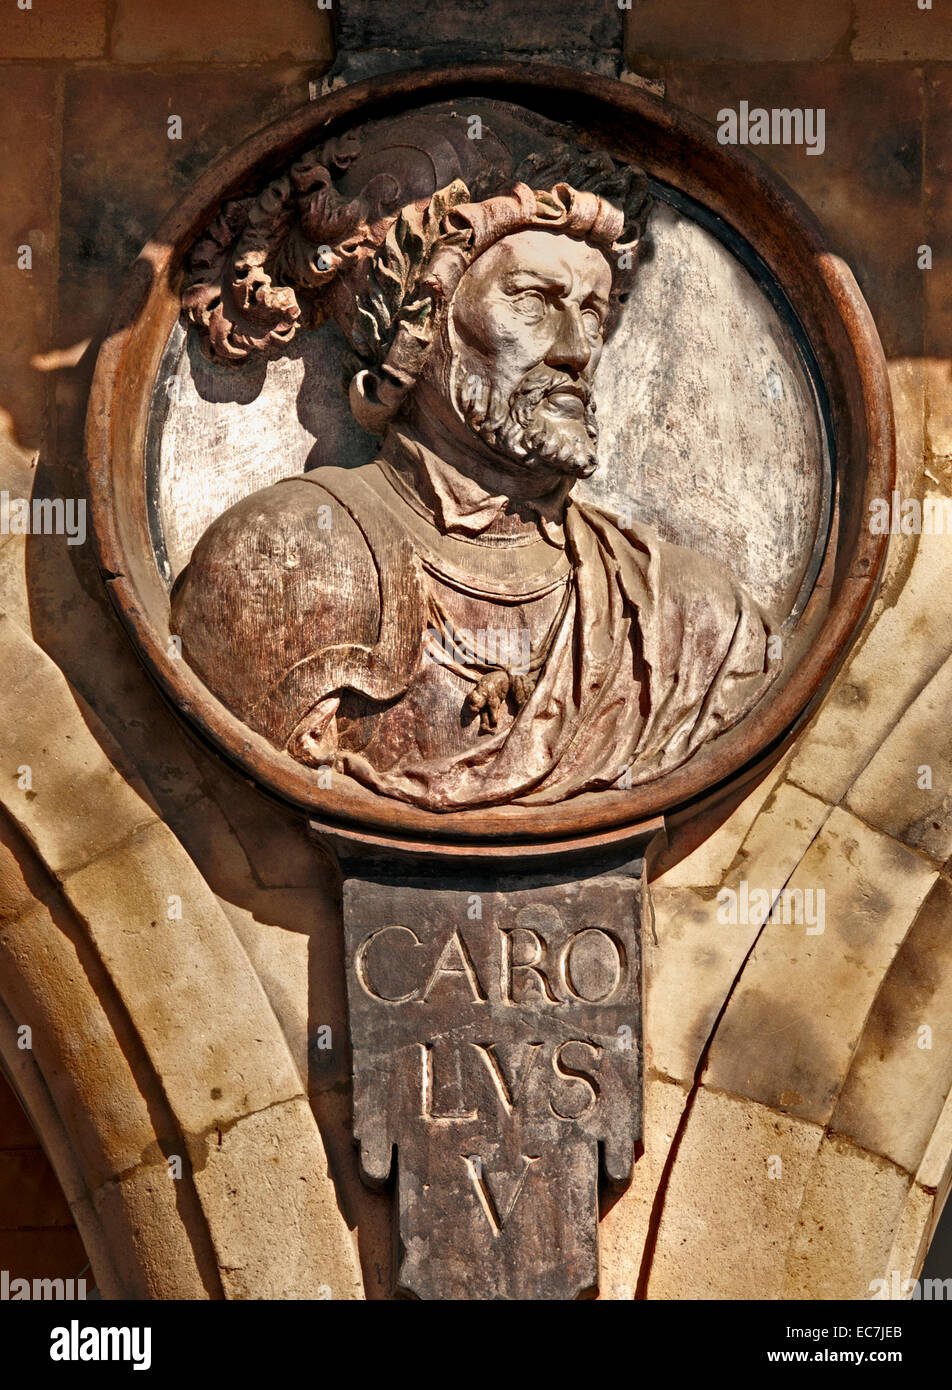 Carolus V - Charles V 1500 – 1558 Emperor of the Holy Roman Empire from 1519 and King of the Spanish realms 1516 - Stock Image